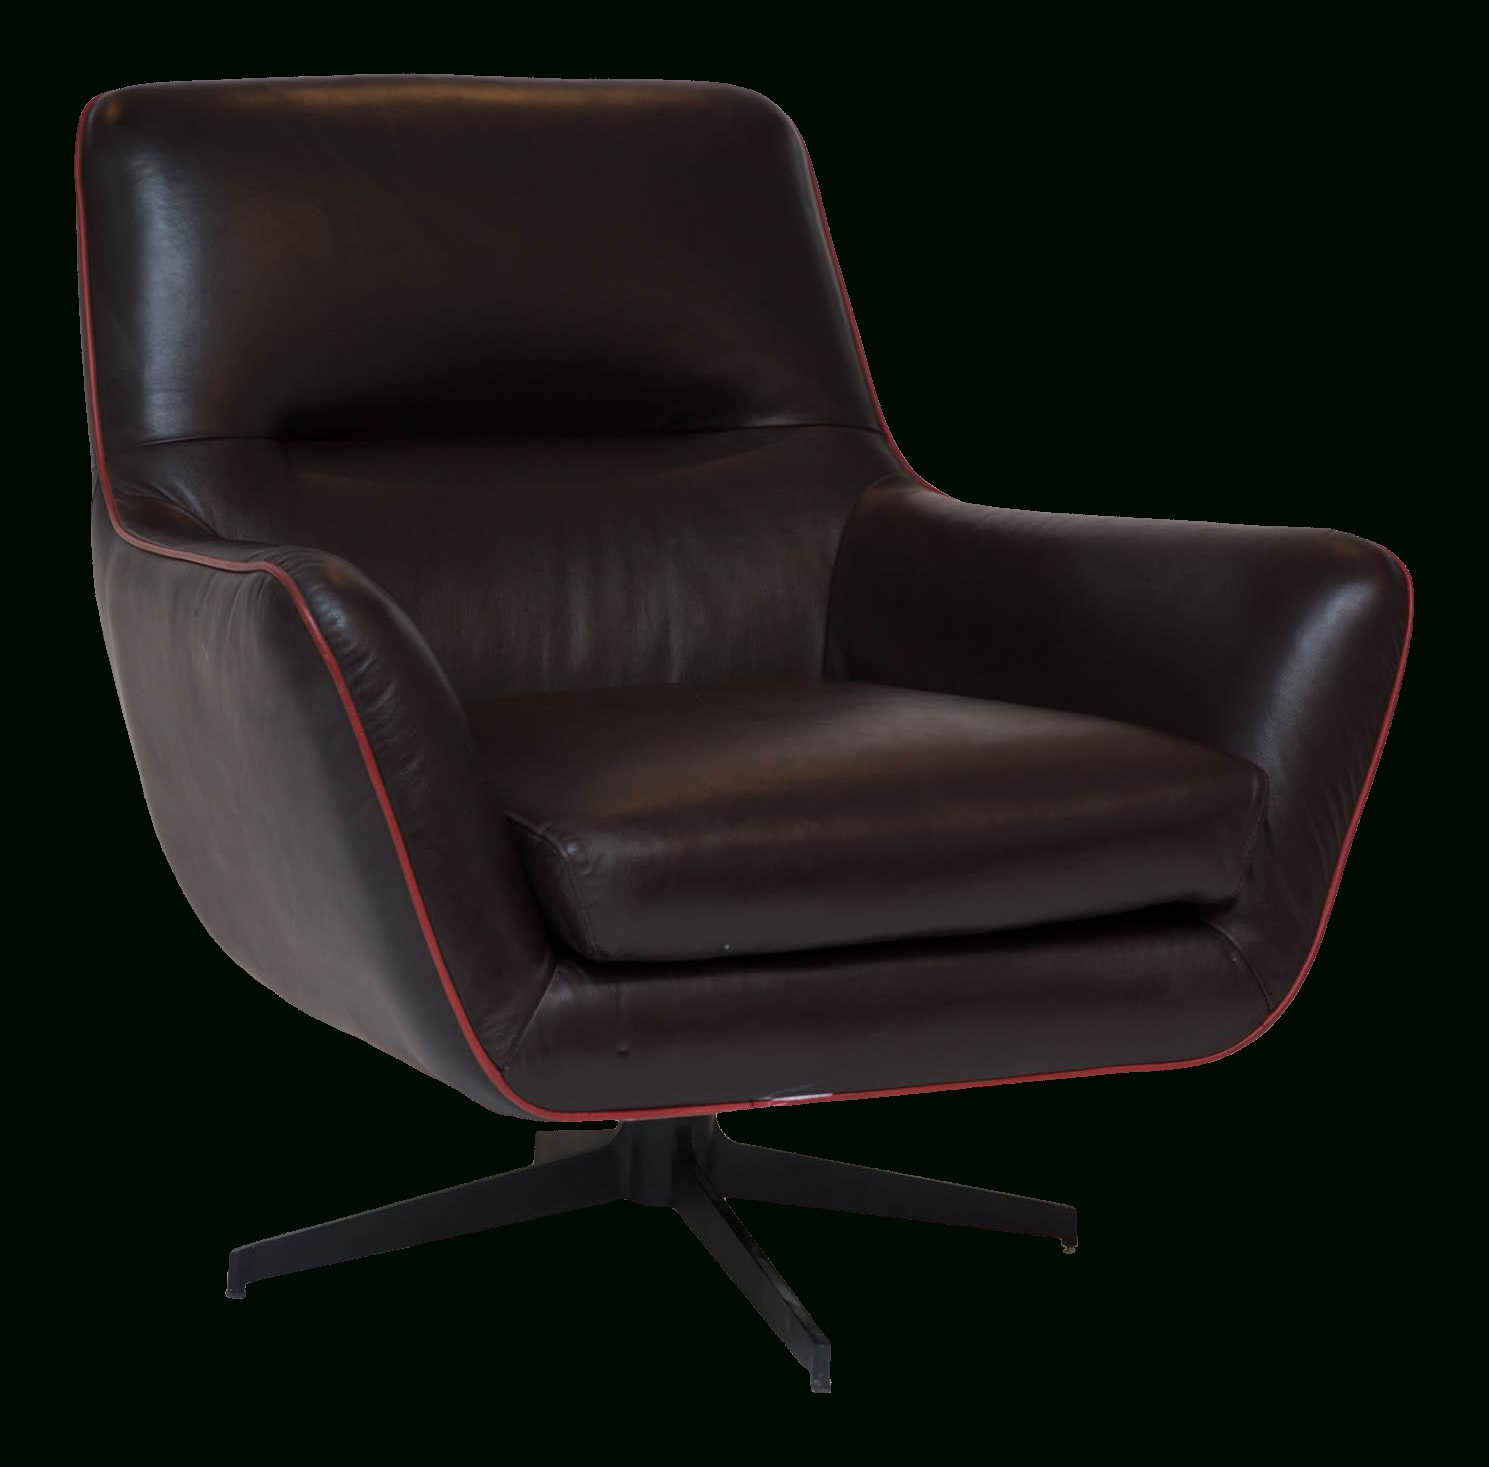 Clean Brown Leather Swivel Chair Trimmed In Red Leather Piping (View 3 of 20)